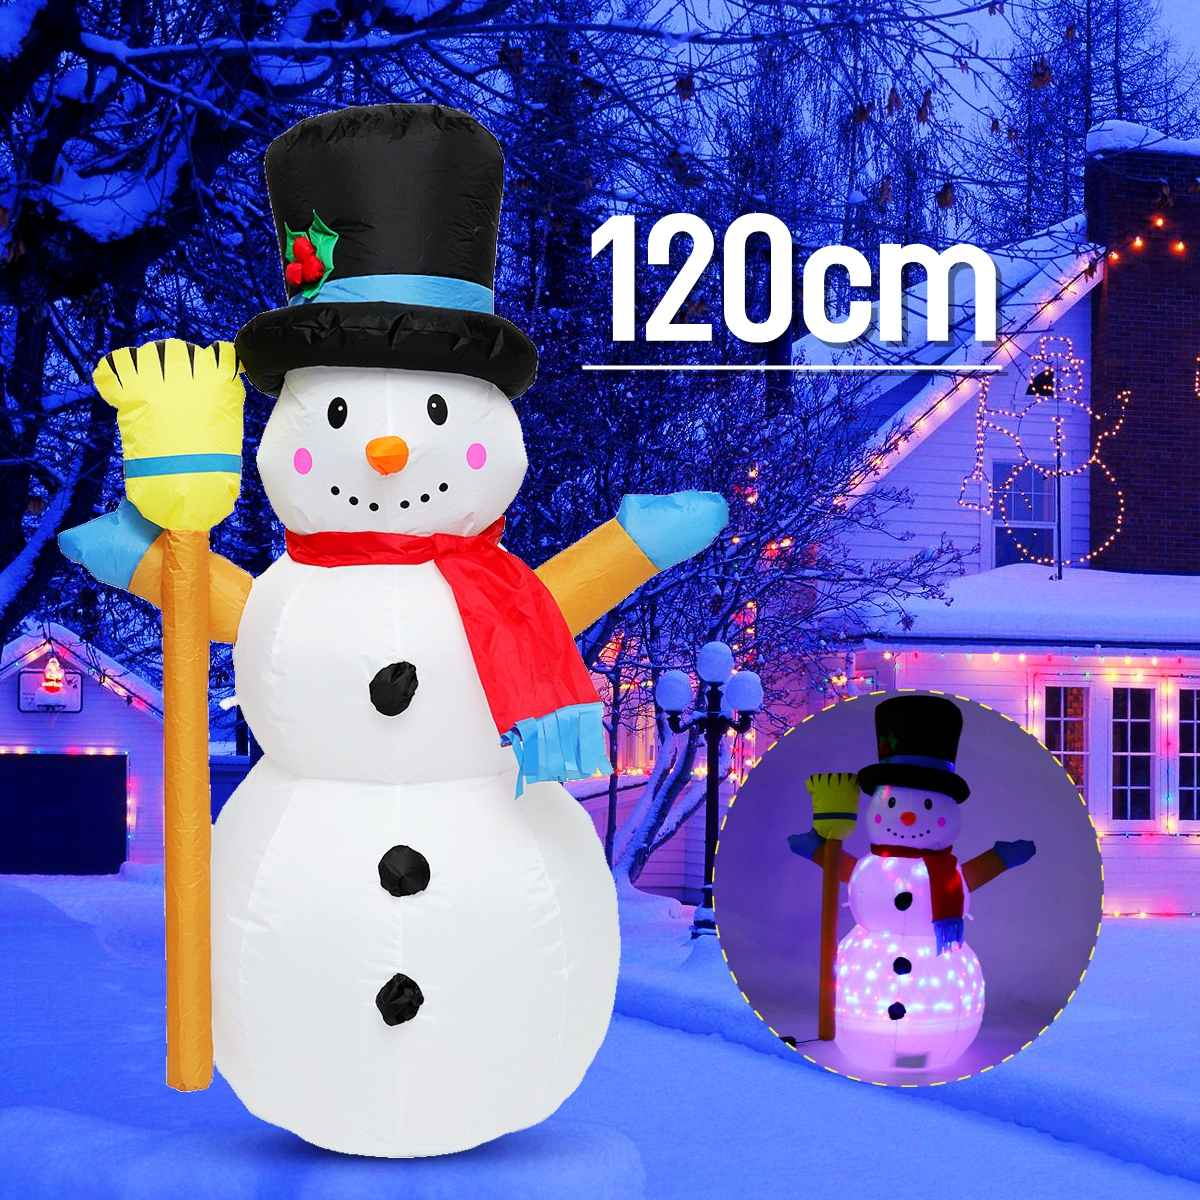 1.2M Christmas Snowman LED Inflatable Model Snowman Doll Broom Cover Christmas Decoration Dressing Supplies+Fan free shipping christmas inflatable snowman model decorative 4 meters high blow up snowman replica for event party toys